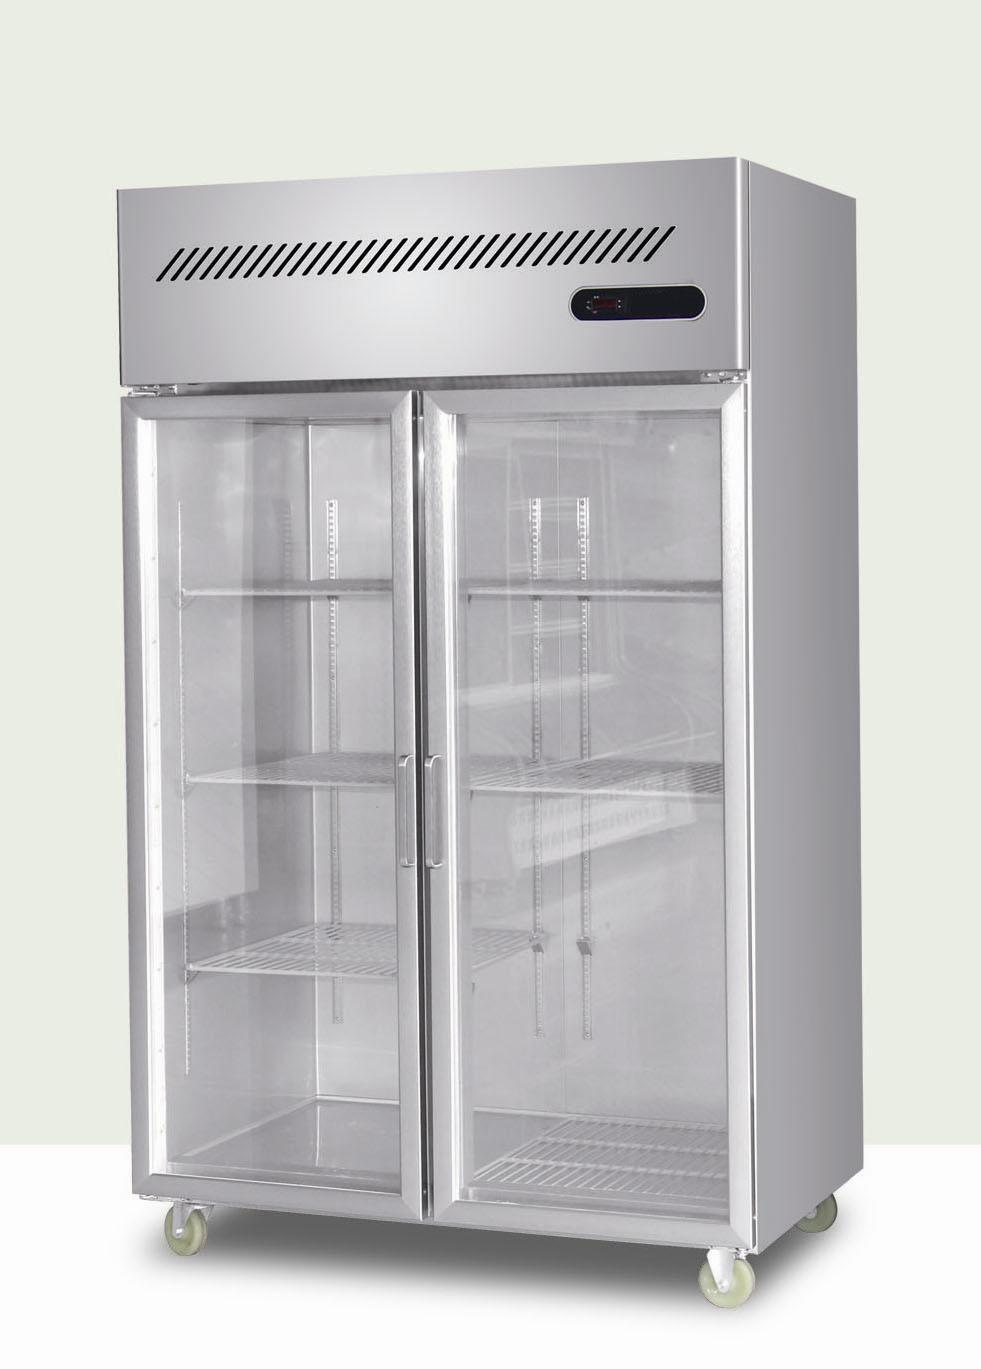 Beautiful Restaurant Kitchen Fridge Stainless Steel Reachiin